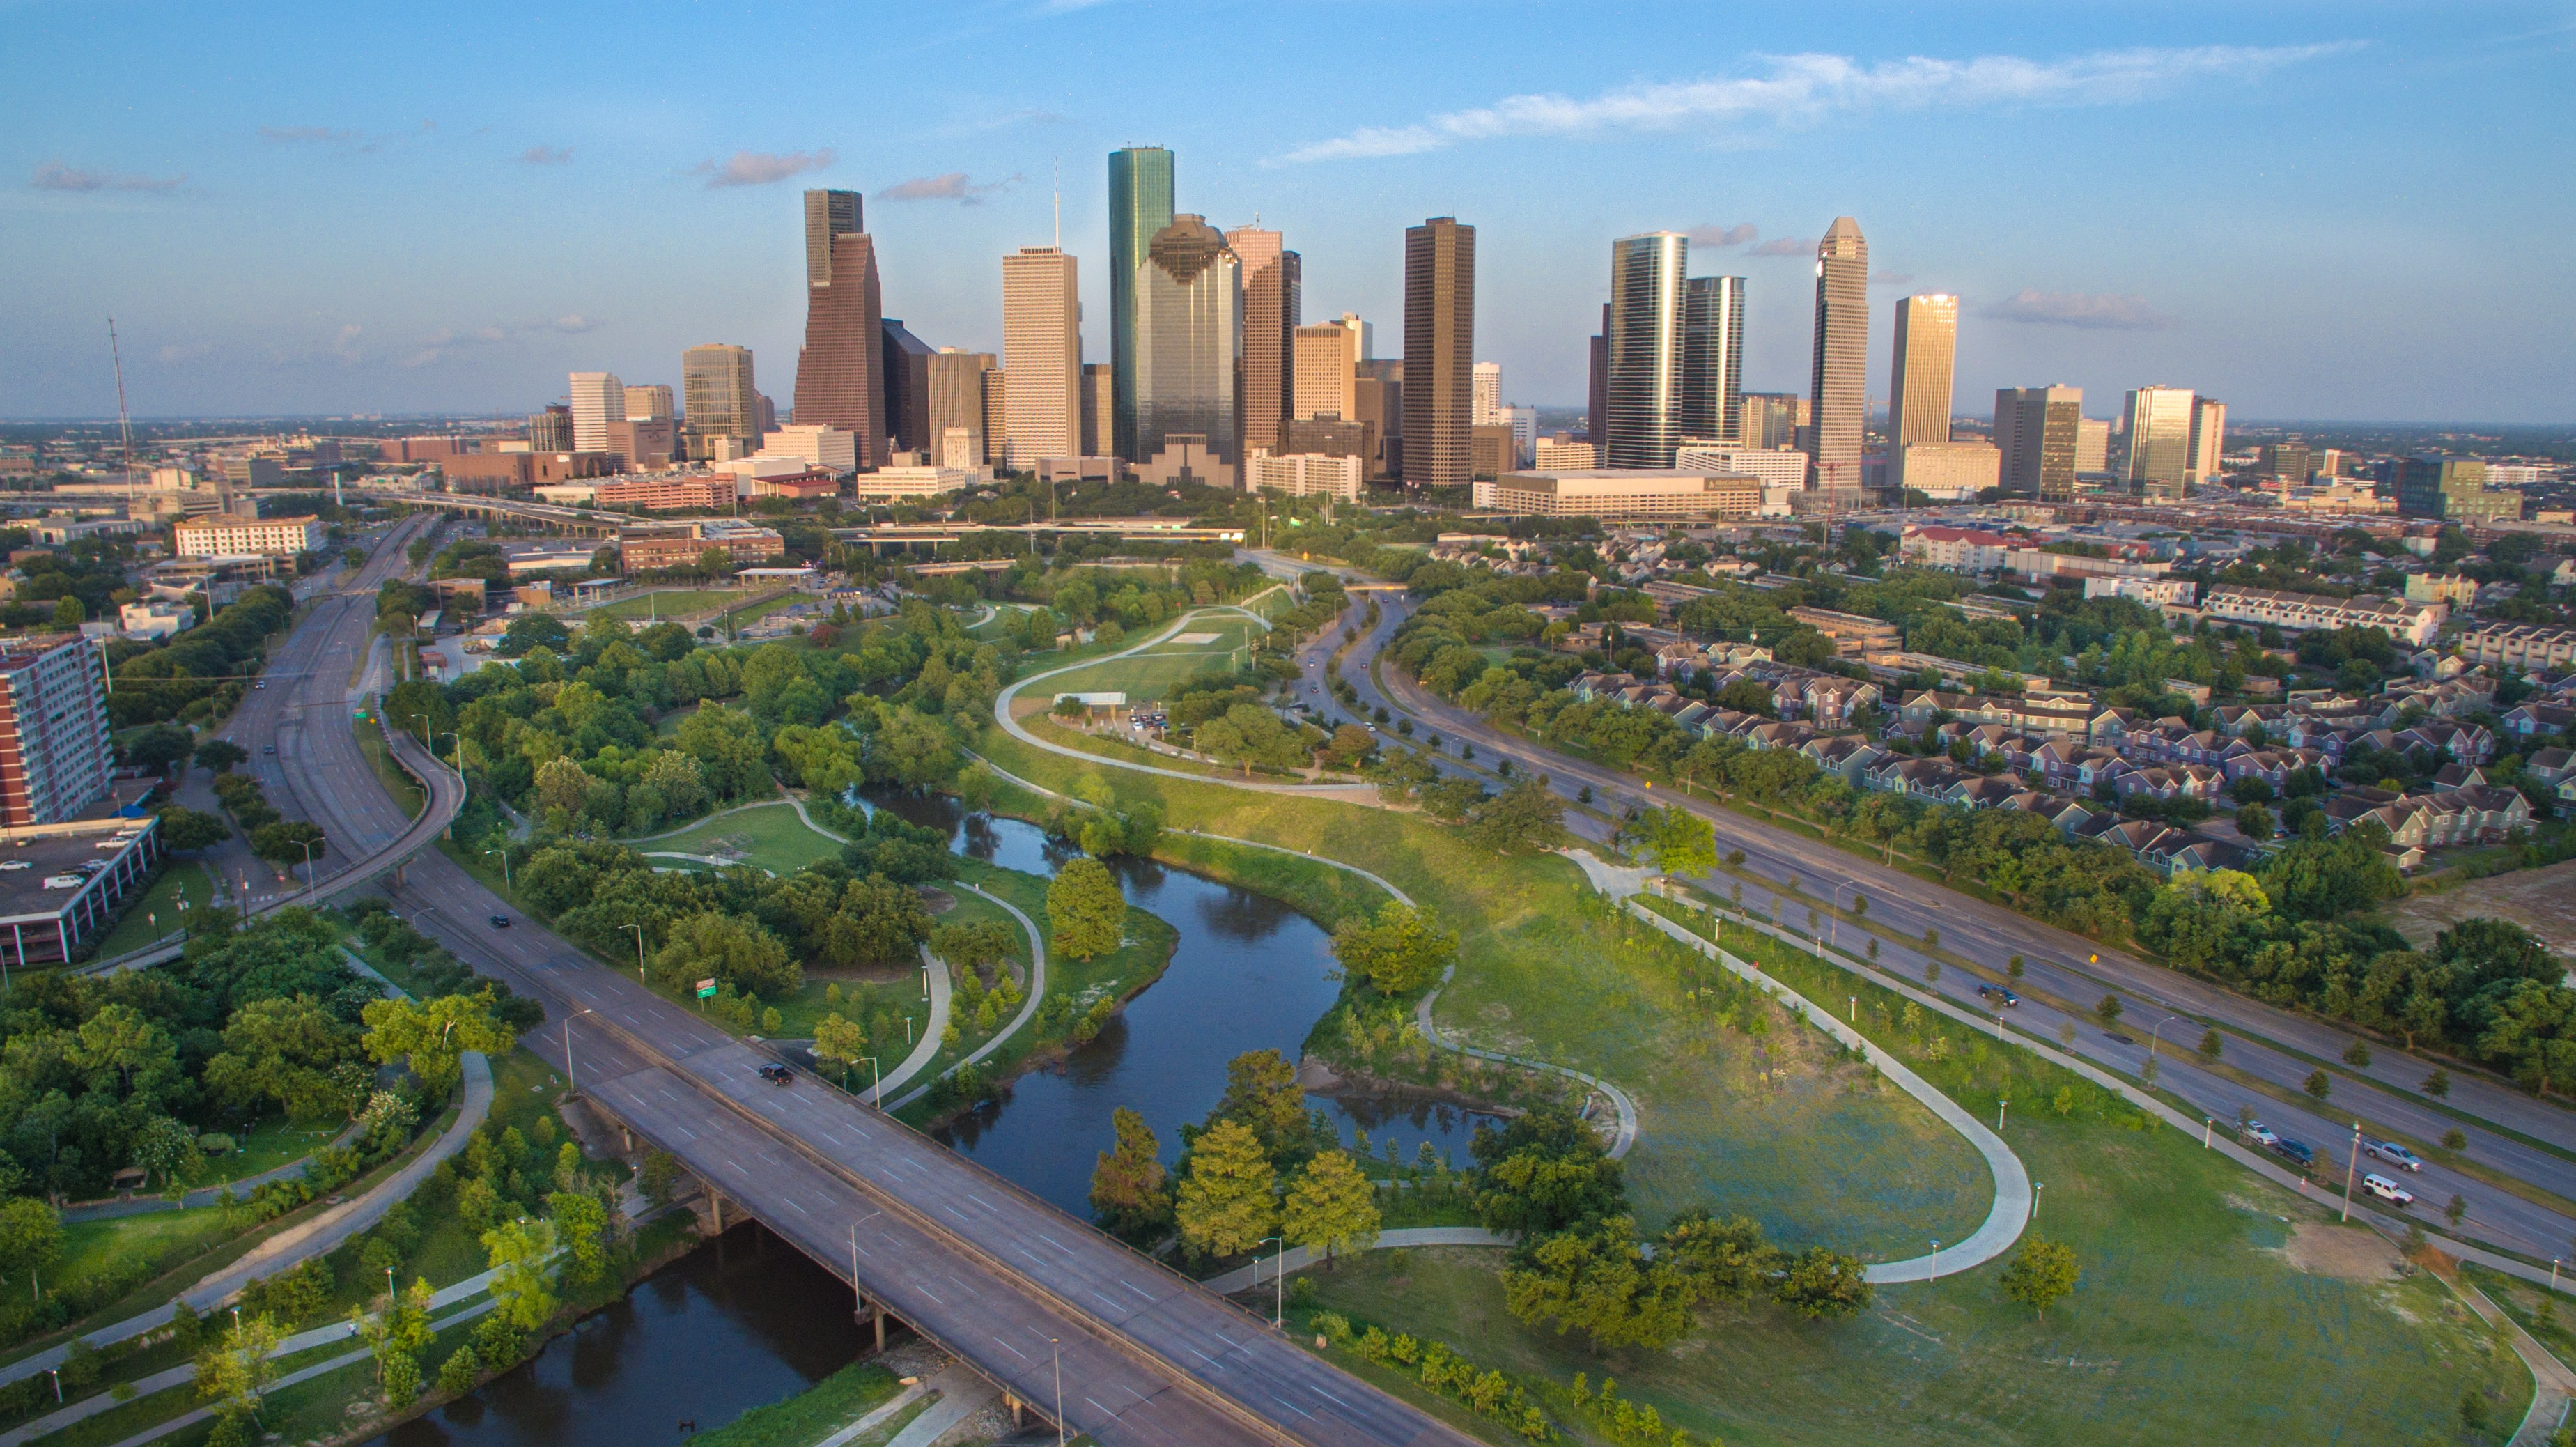 Moving to Houston? Here's what you need to know